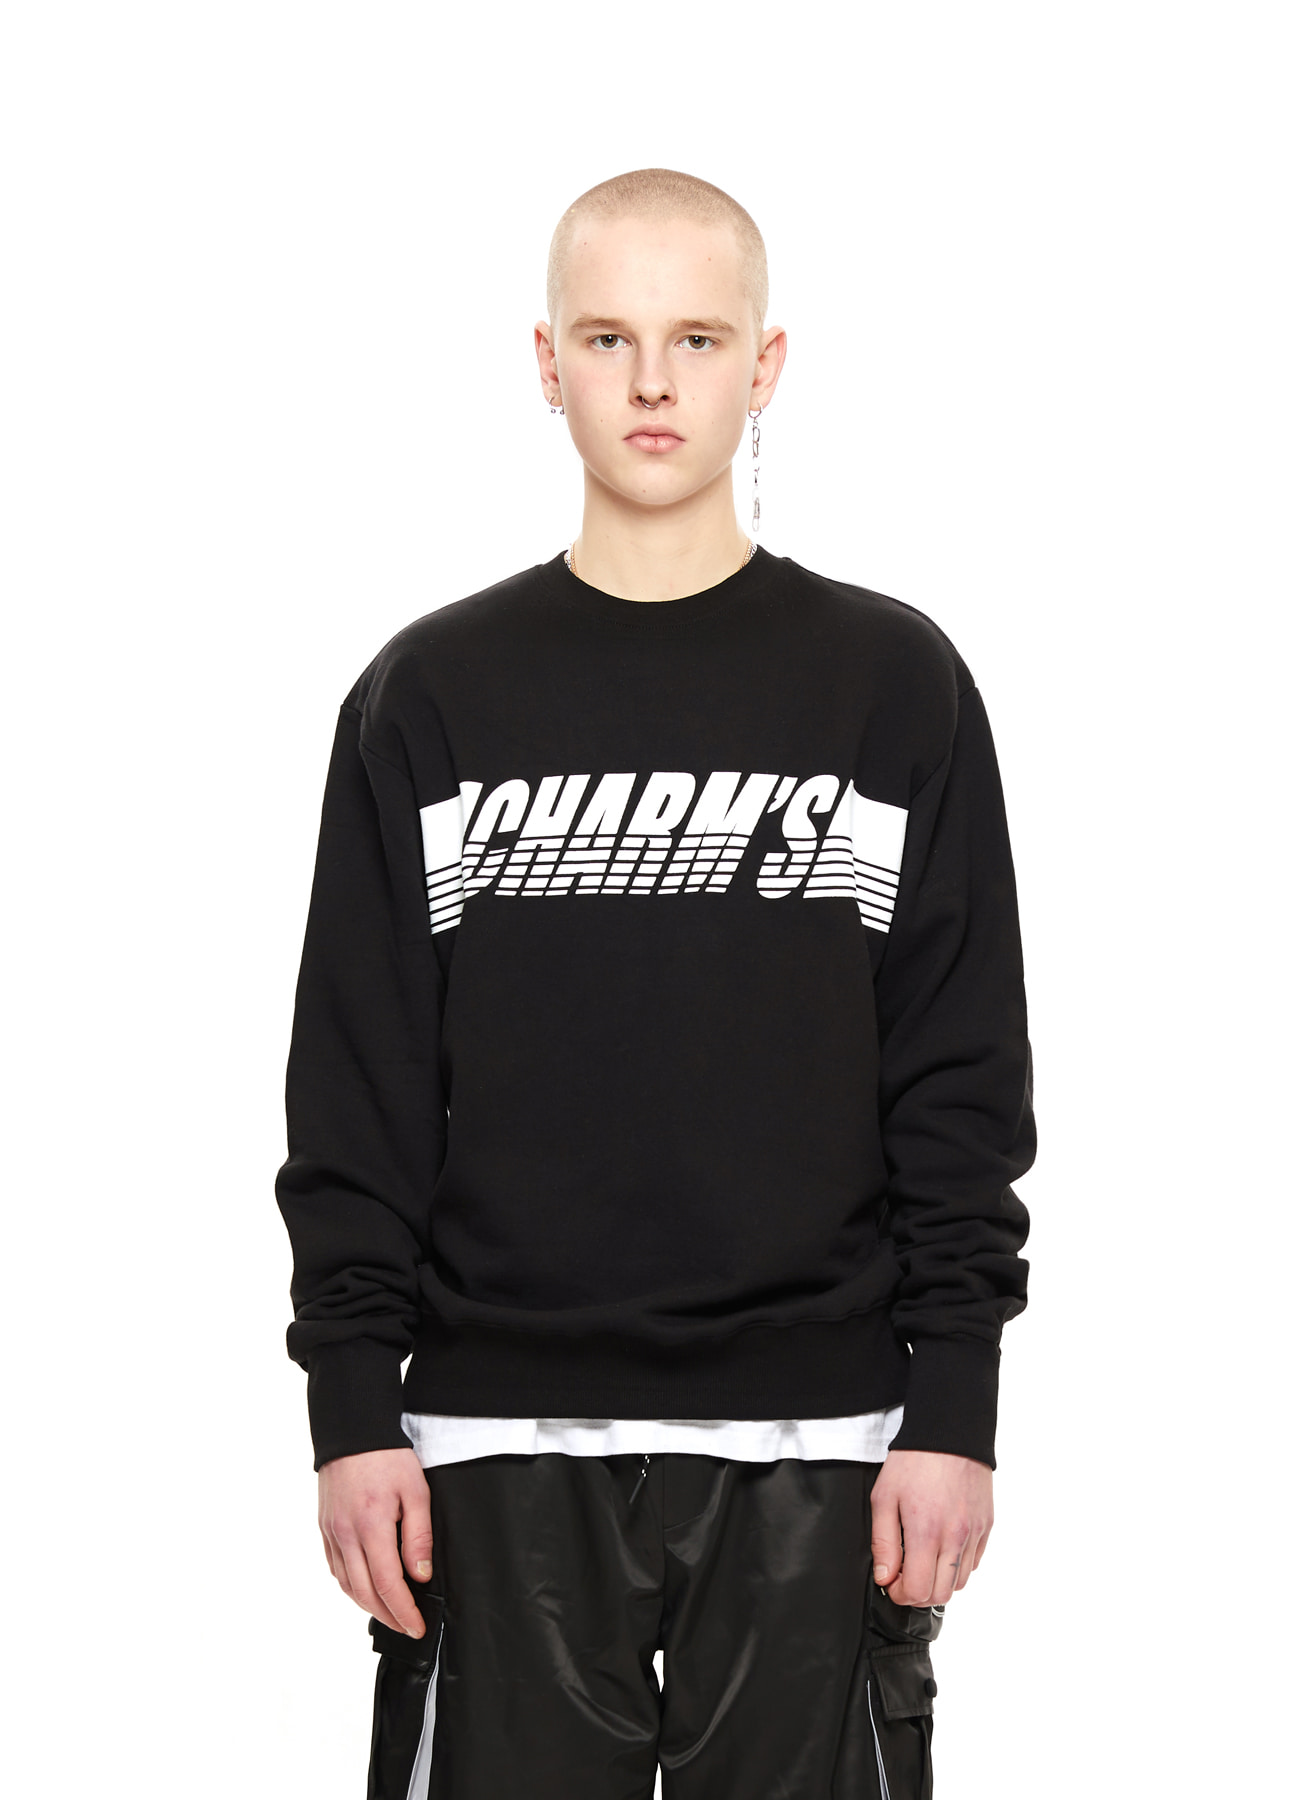 CHARMS WHITE LOGO SWEATSHIRTS